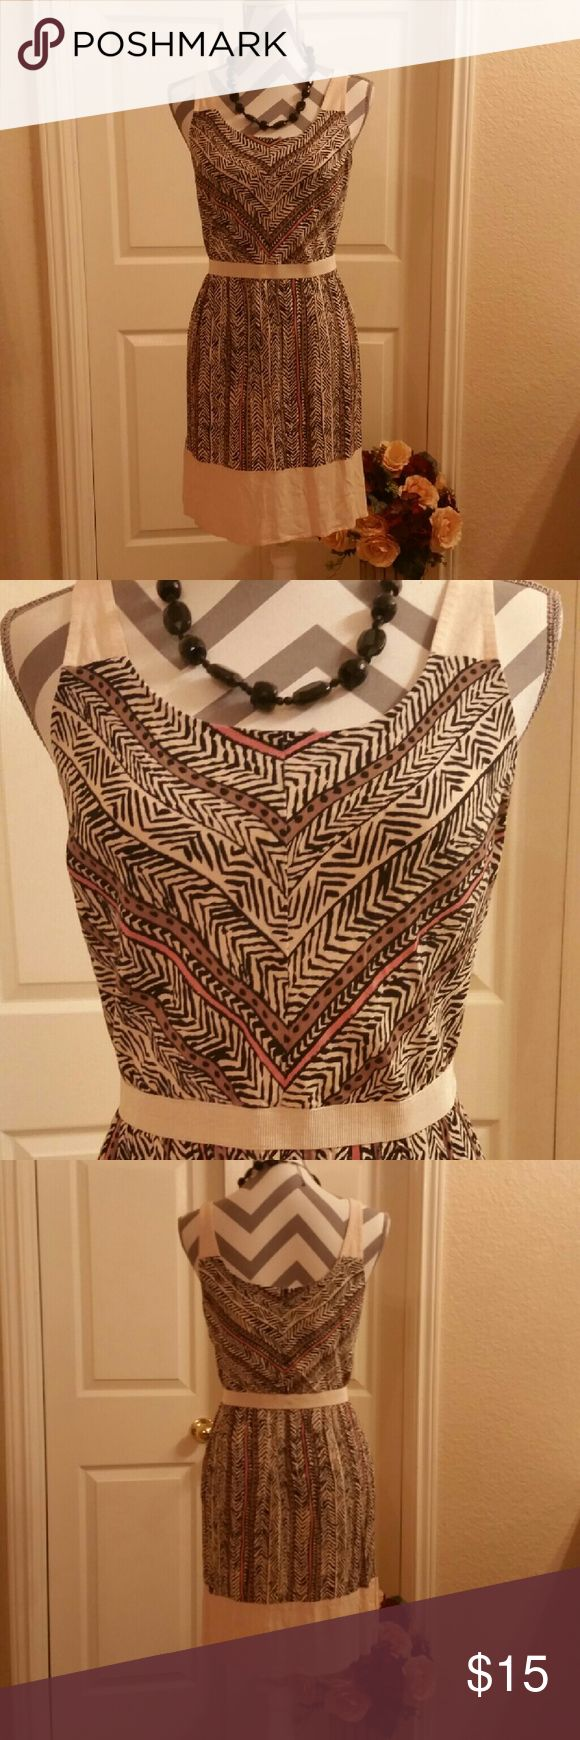 Loft Aztec pattern dress. Beautiful sleeveless loft dress. Perfect for the day at the office.nigth out or wedding guest. Very versatile piece. LOFT Dresses Mini